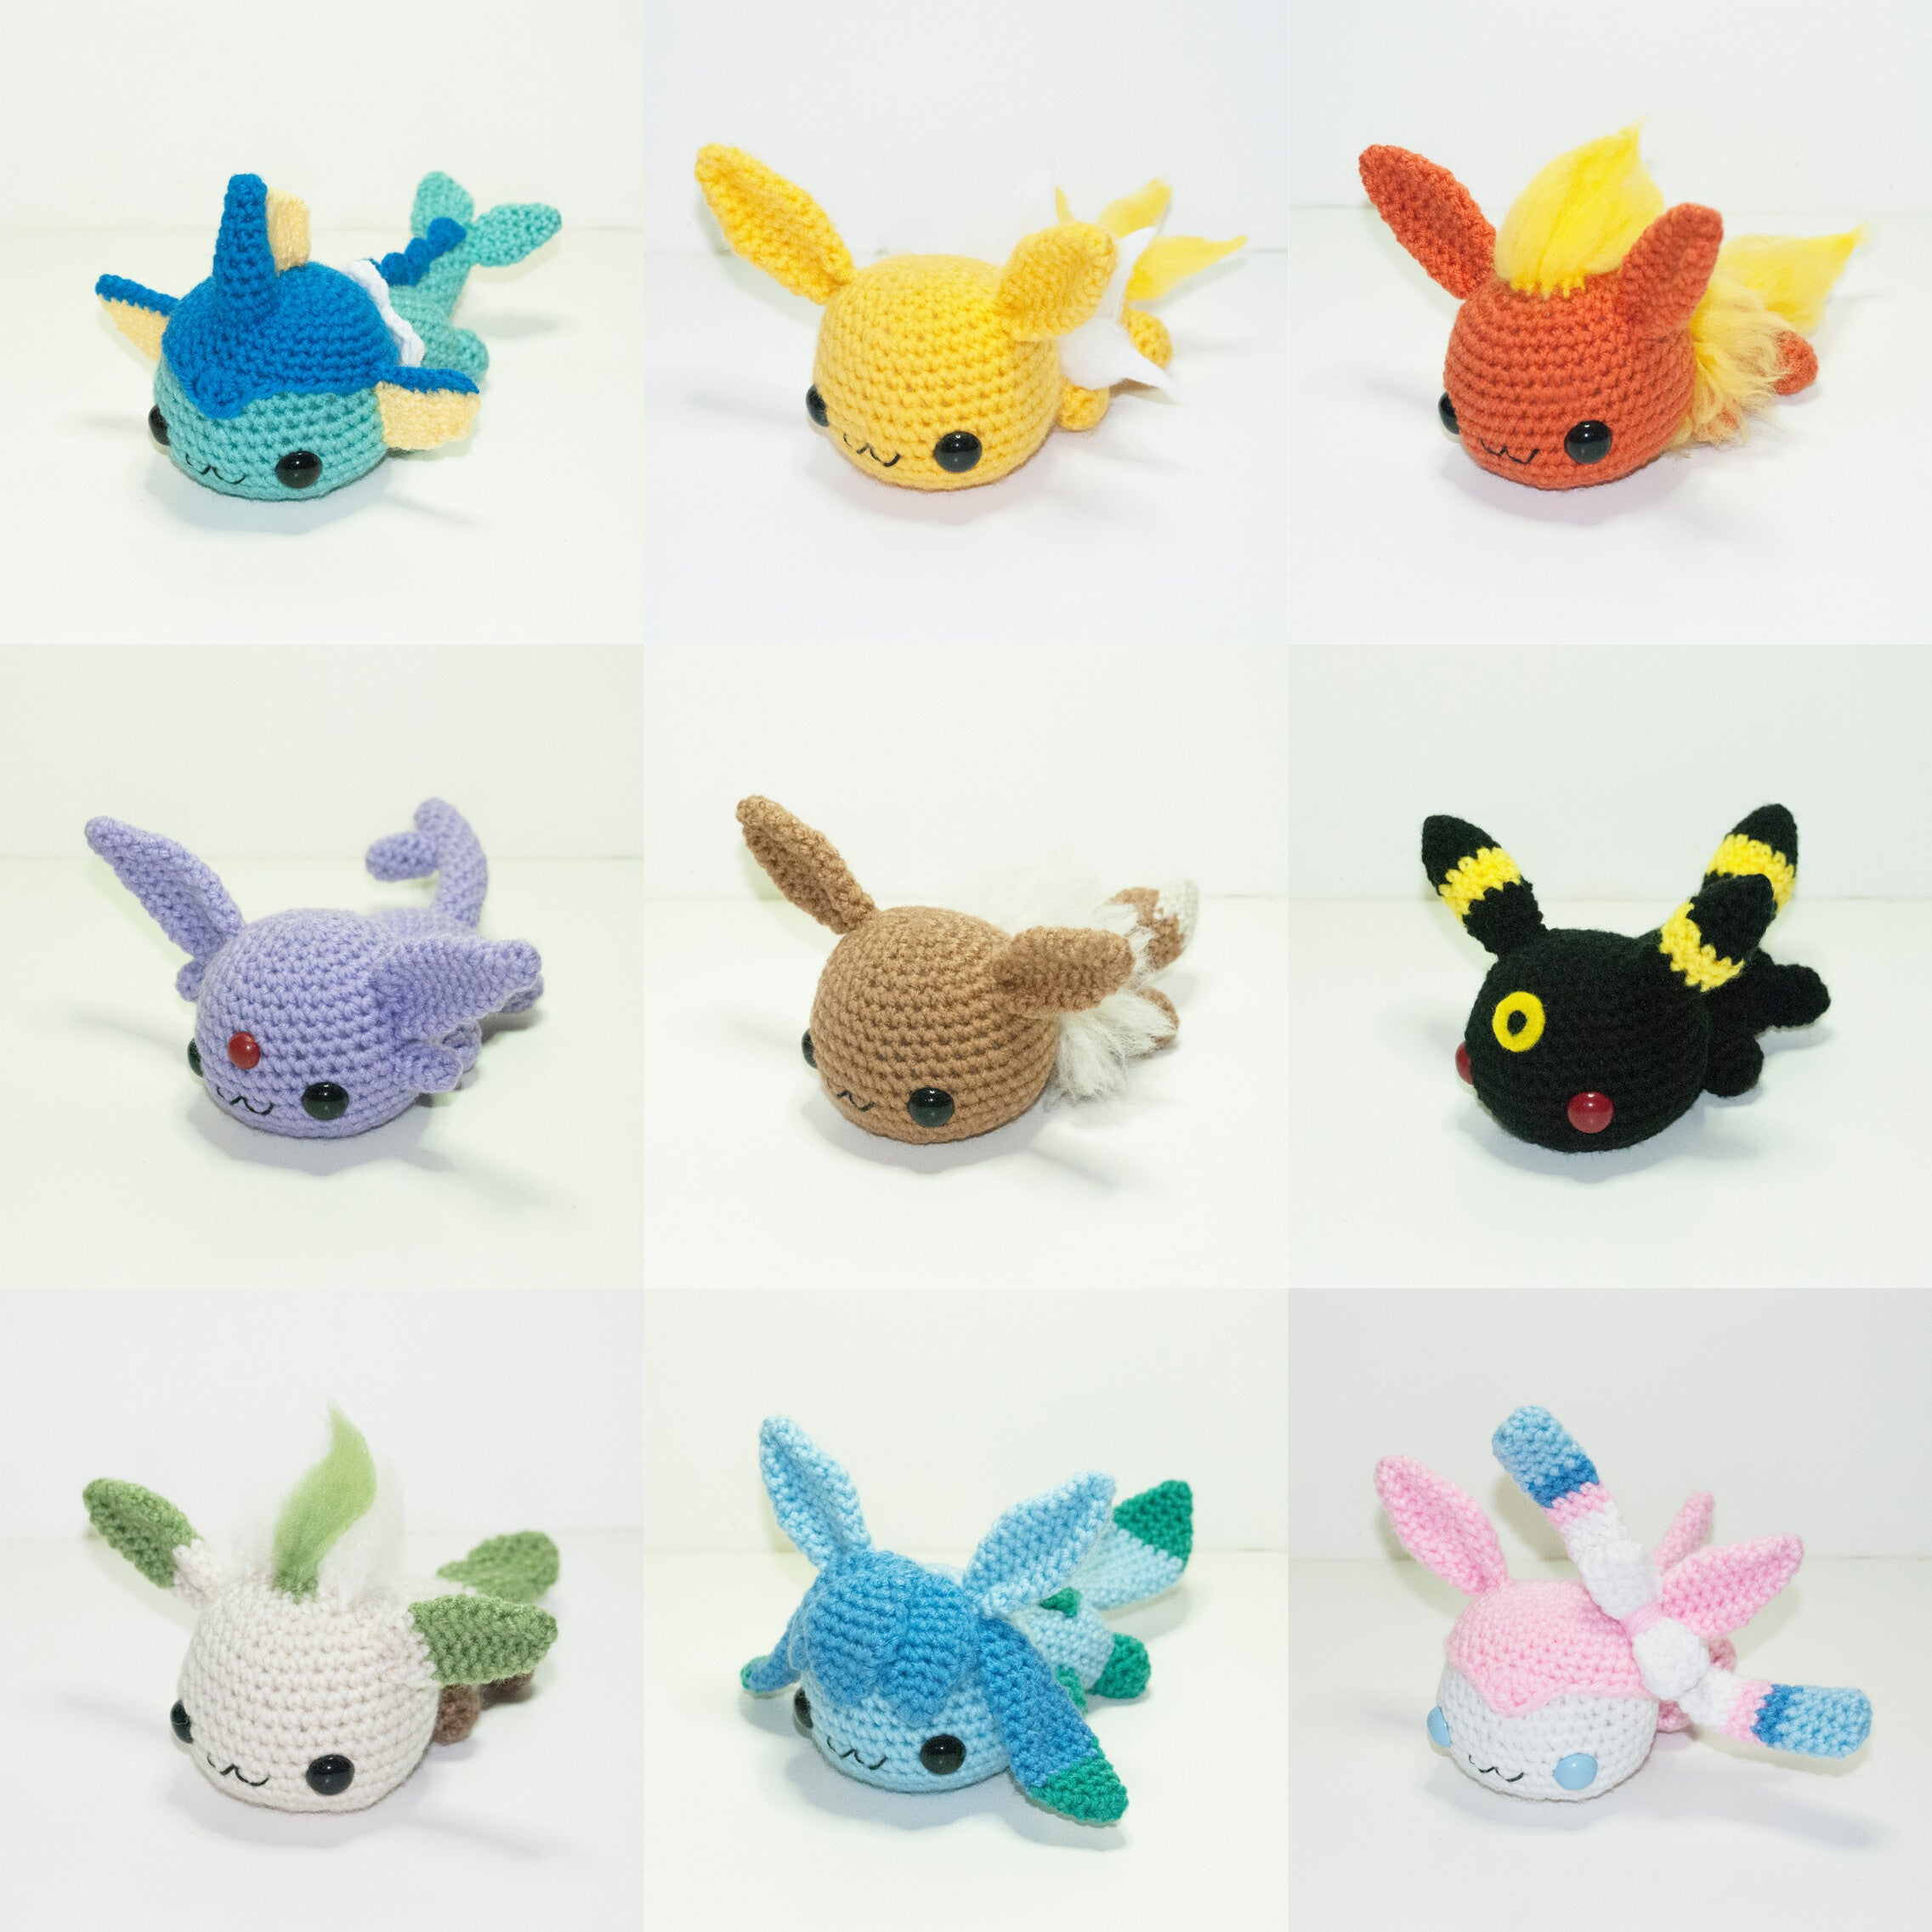 Crochet Pokemon : Even Crocheted PokEmon Need Rest After Battle Kotaku Australia